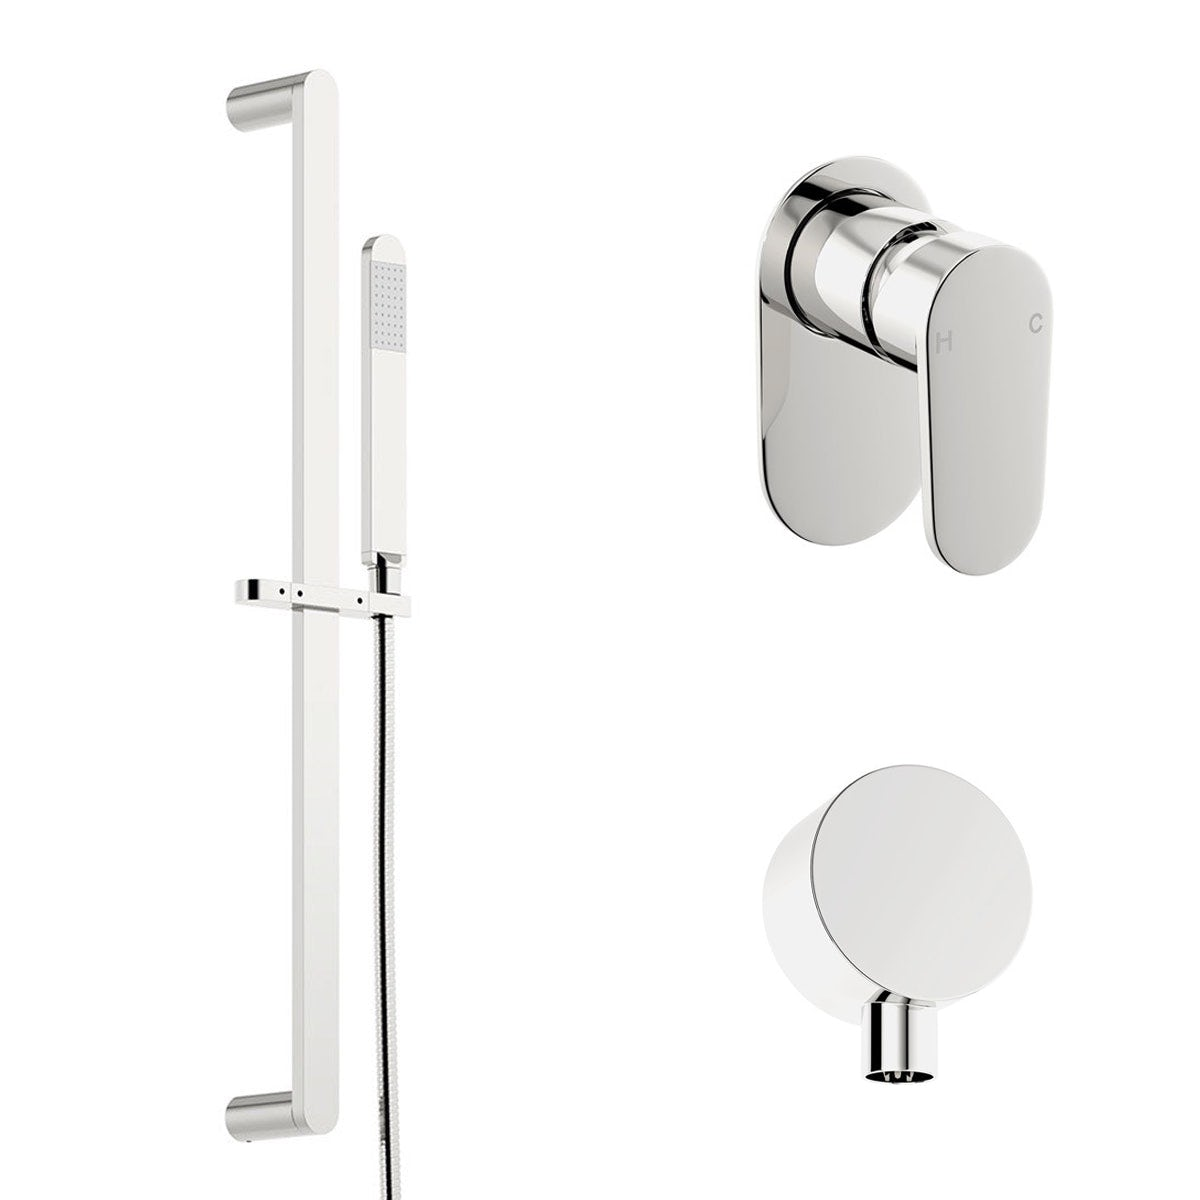 Spa Round Manual Shower Valve with Slider Rail Kit